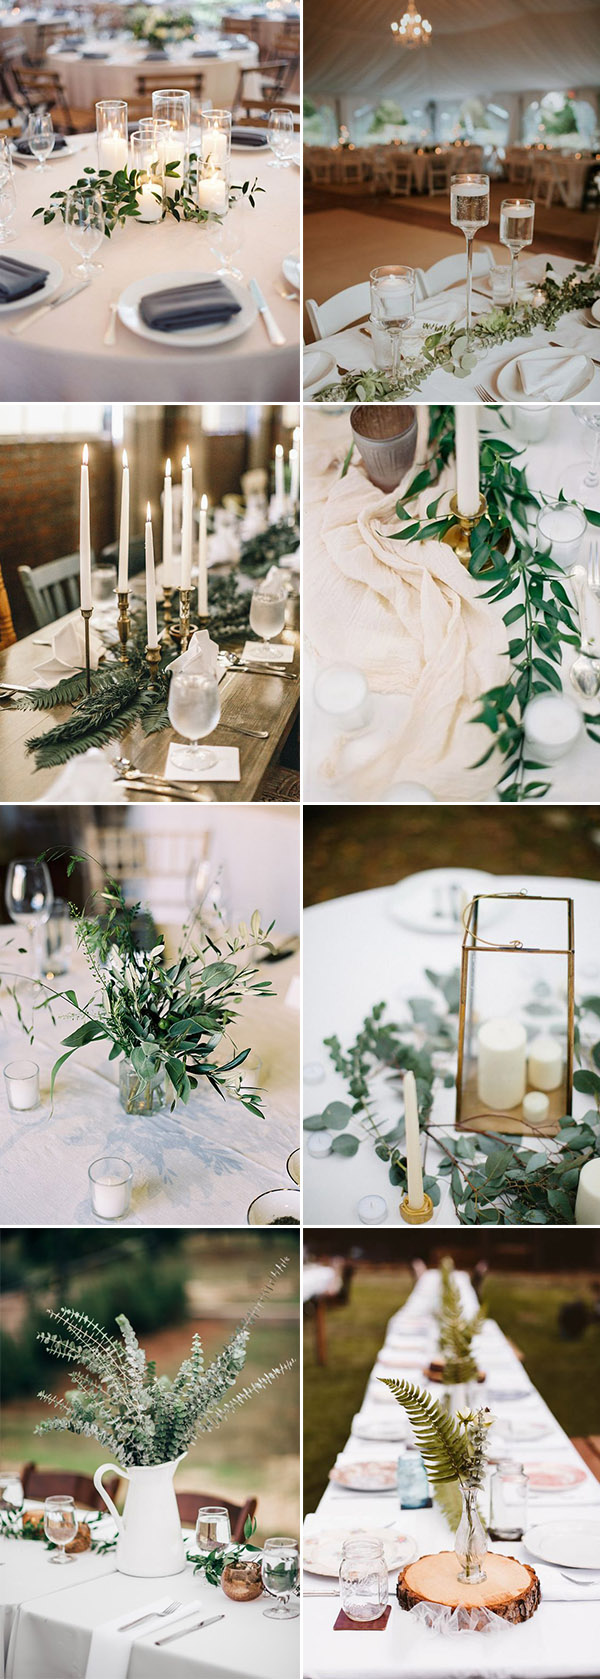 Minimalist Wedding Table Decorations 58 Off Awi Com